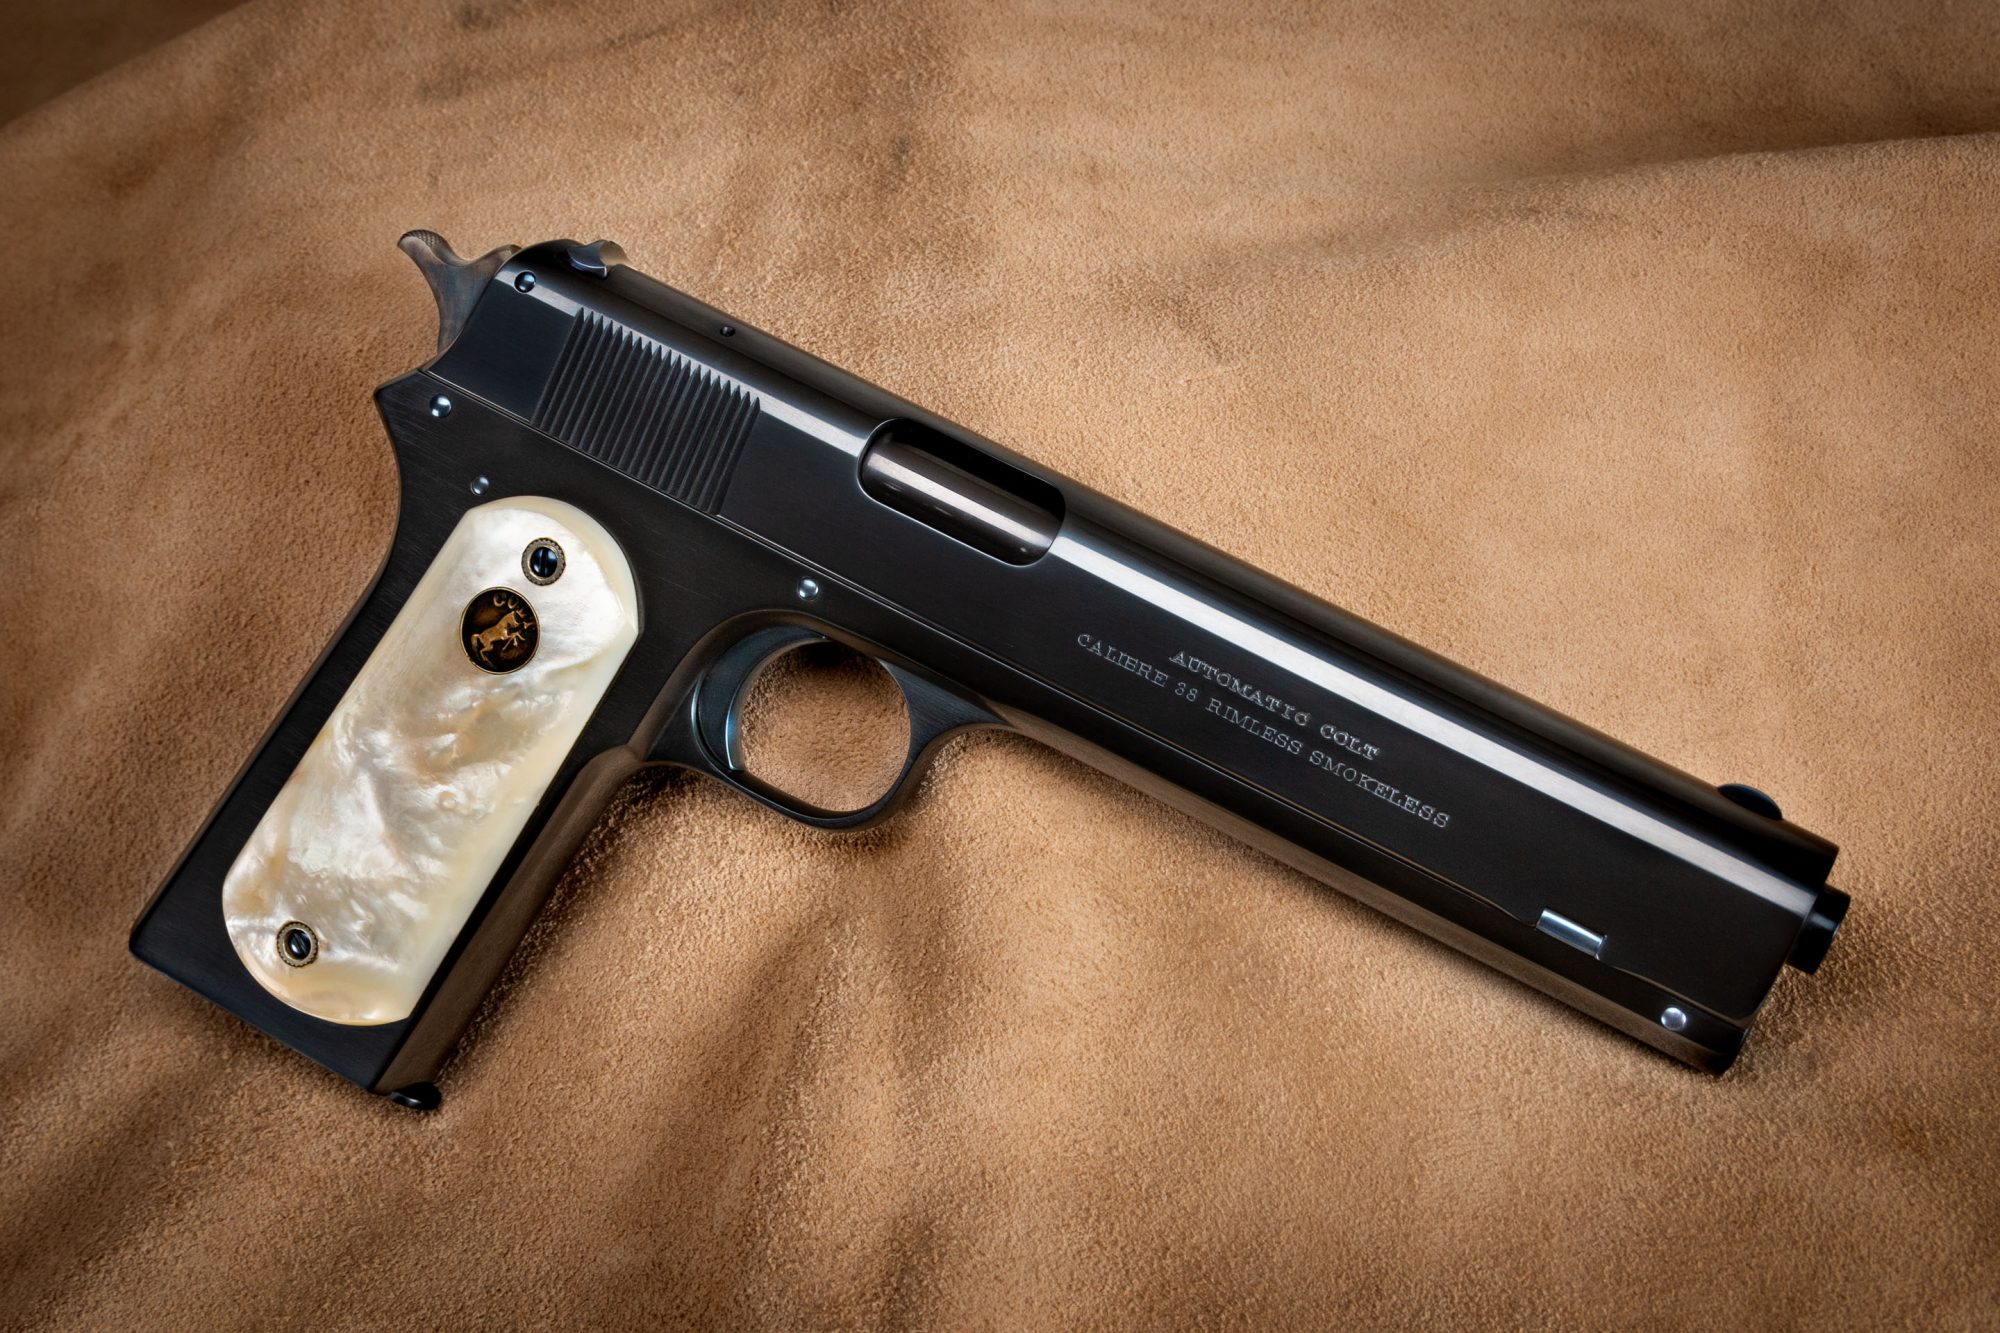 Photo of a Colt Model 1902 in .38 ACP from 1912, restored by Turnbull Restoration in 2019 and now for sale through the restorer's showroom in Bloomfield, NY